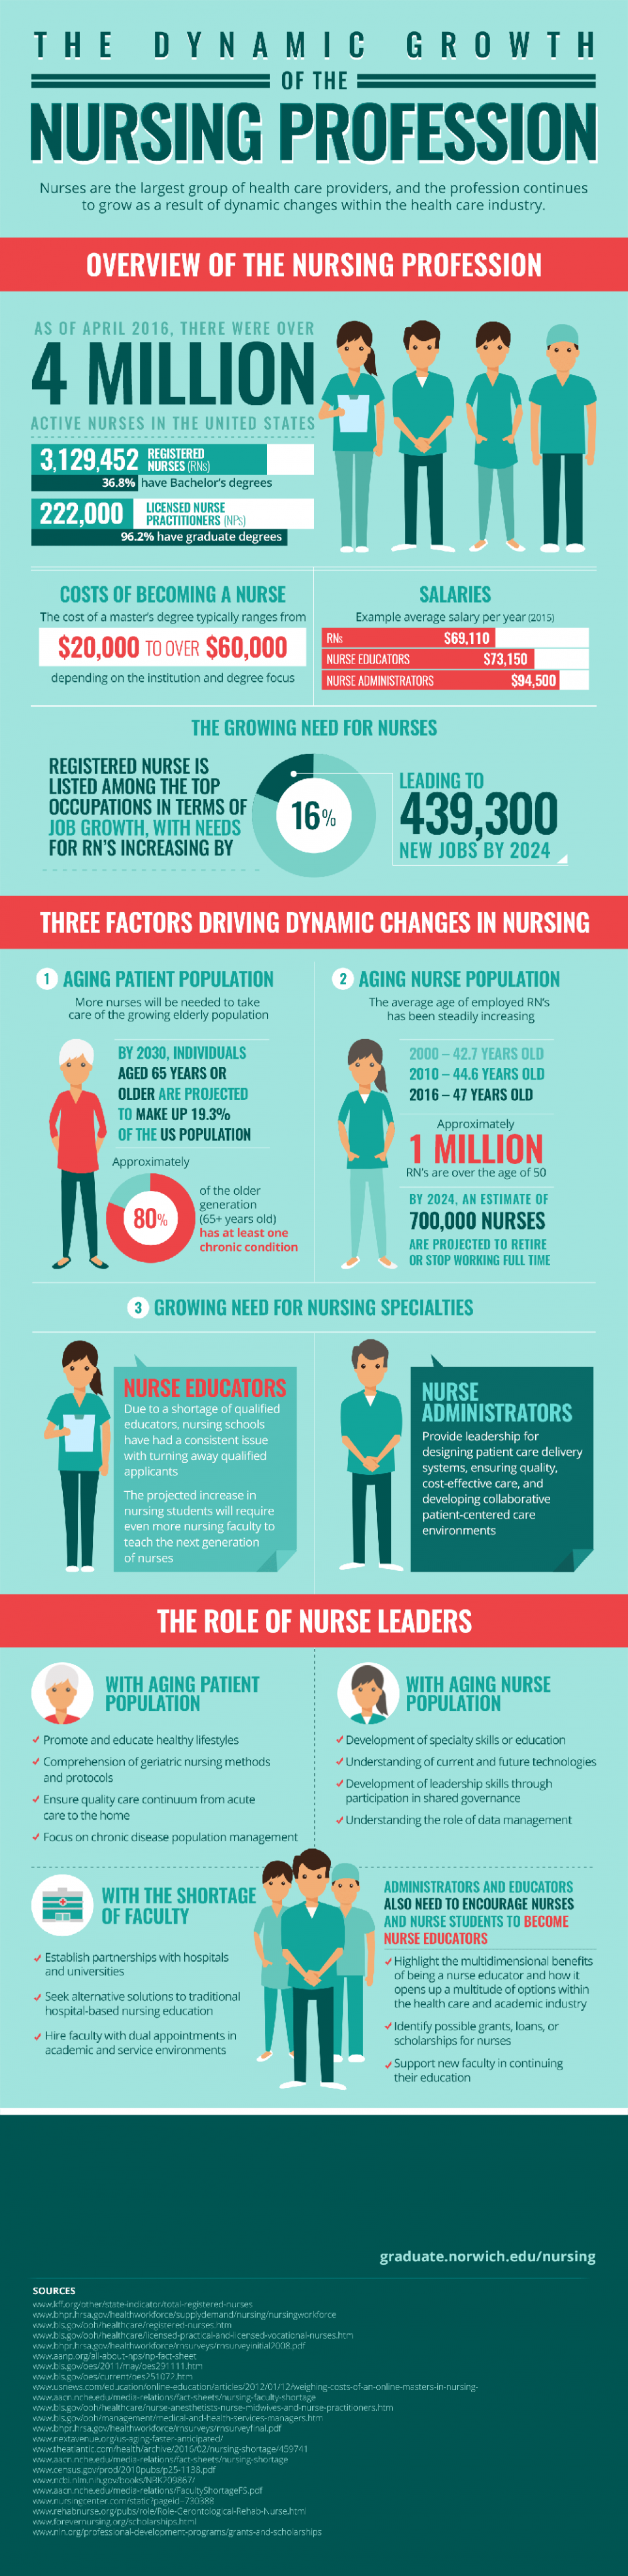 growth of nursing profession infographic image